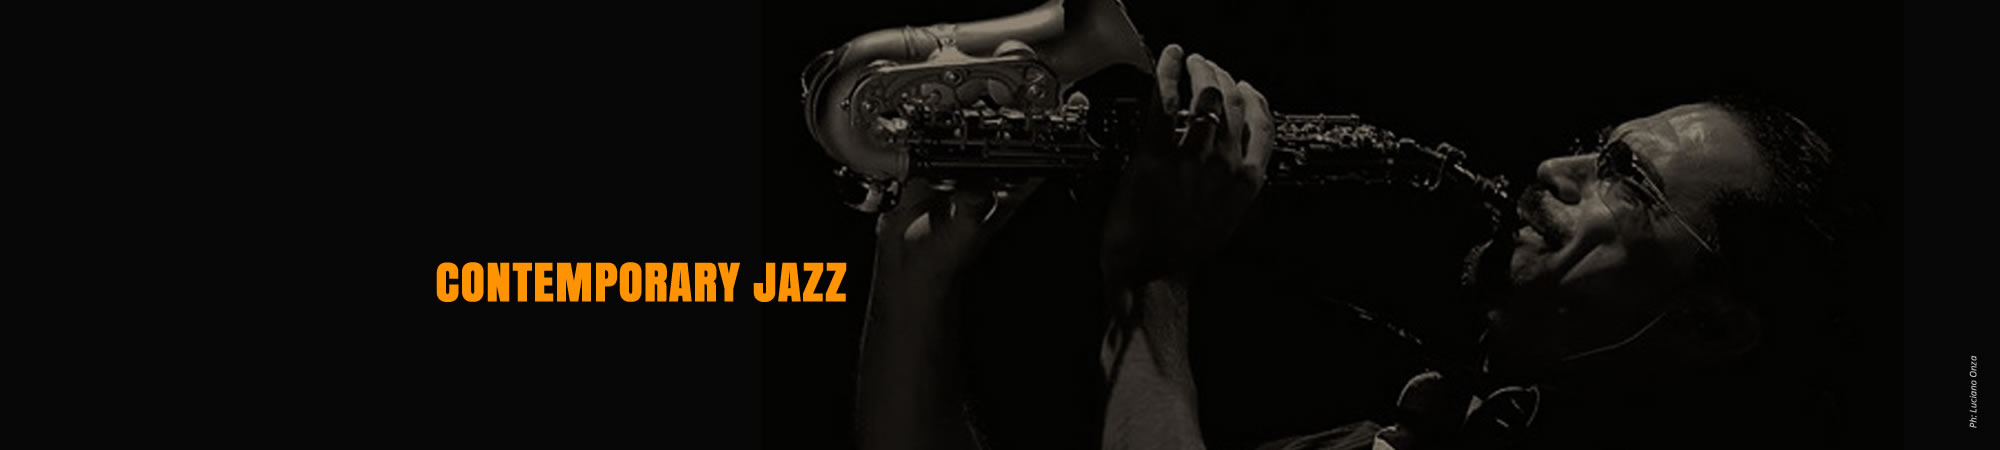 Slide_Contemporary_jazz_ENG_GV